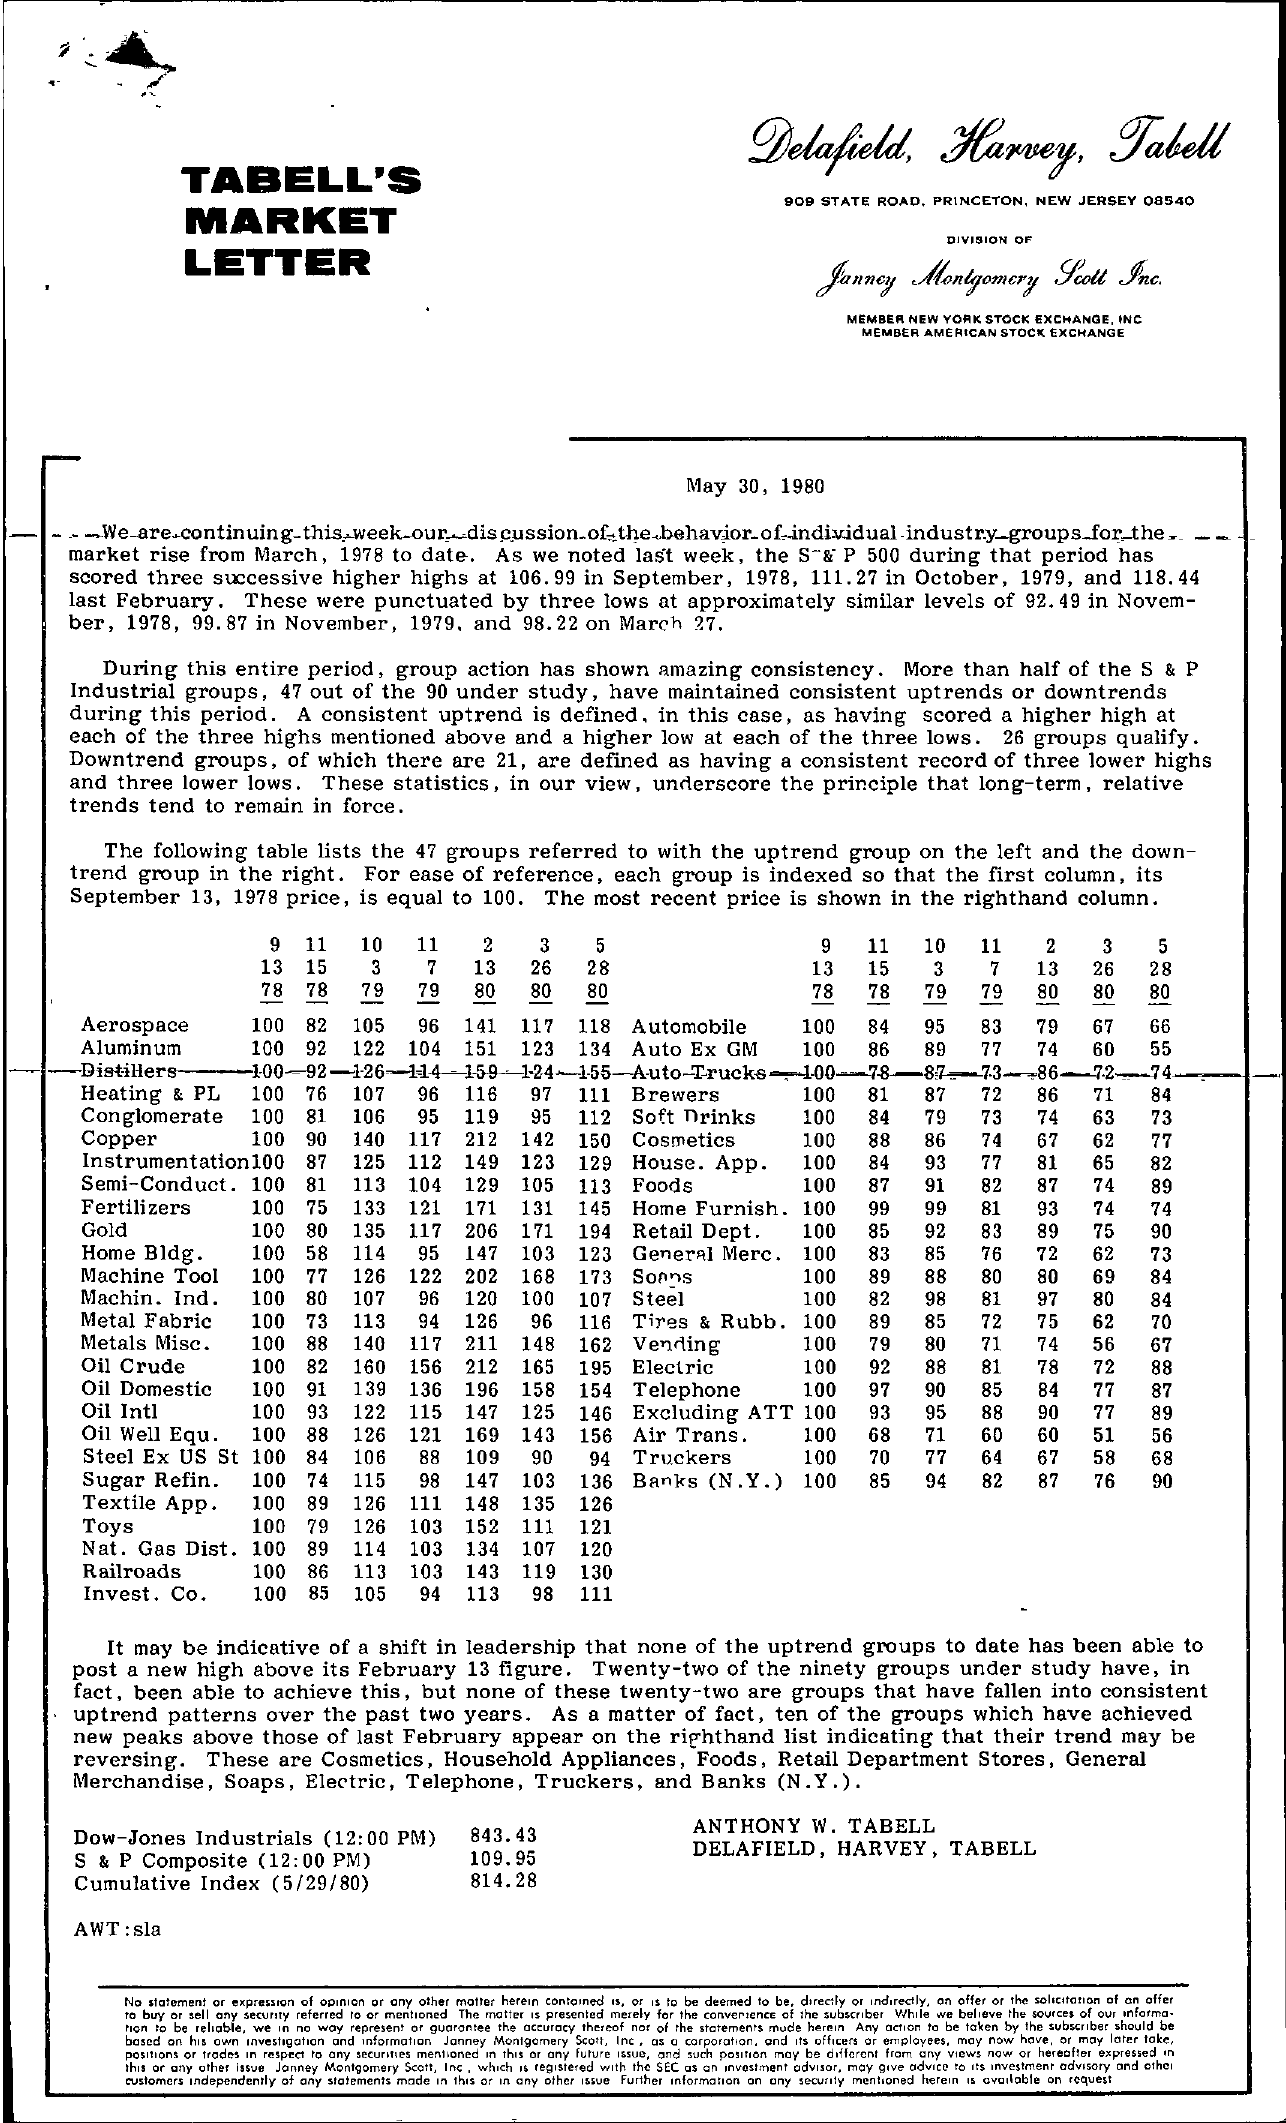 Tabell's Market Letter - May 30, 1980